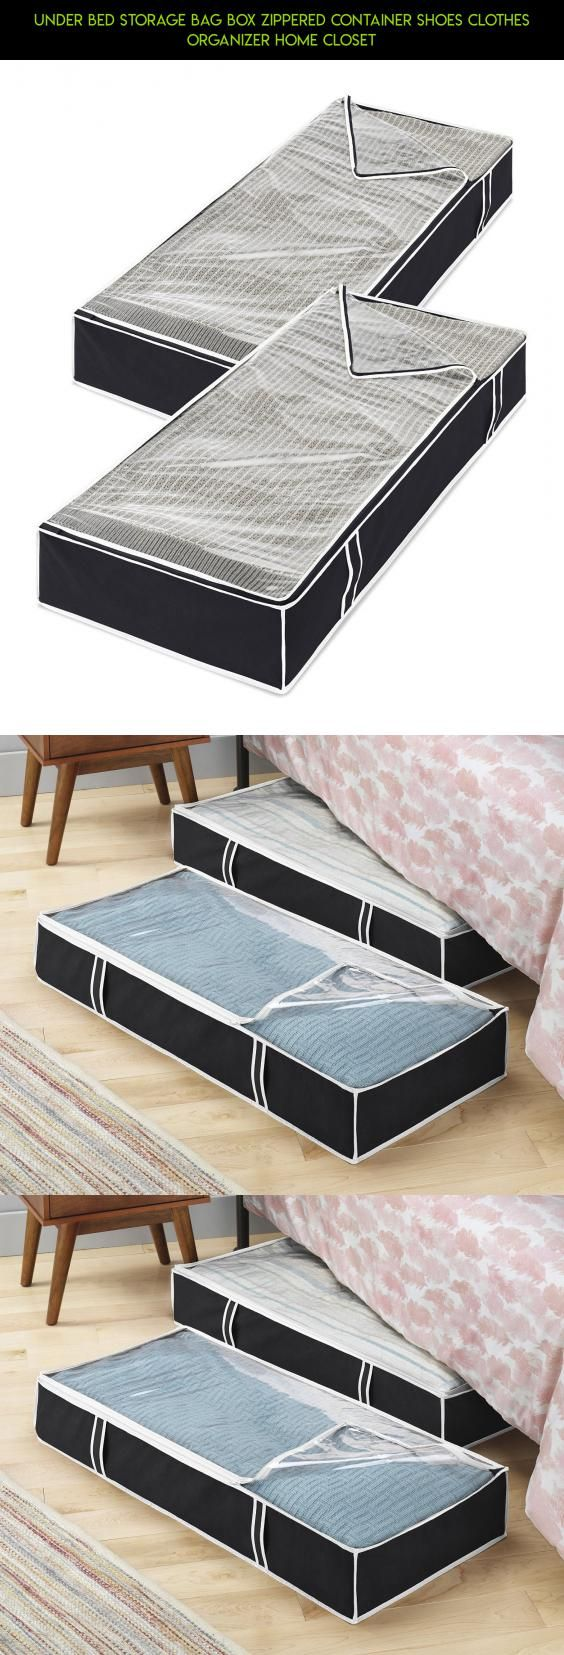 Under Bed Storage Bag Box Zippered Container Shoes Clothes Organizer Home  Closet #tech #kit